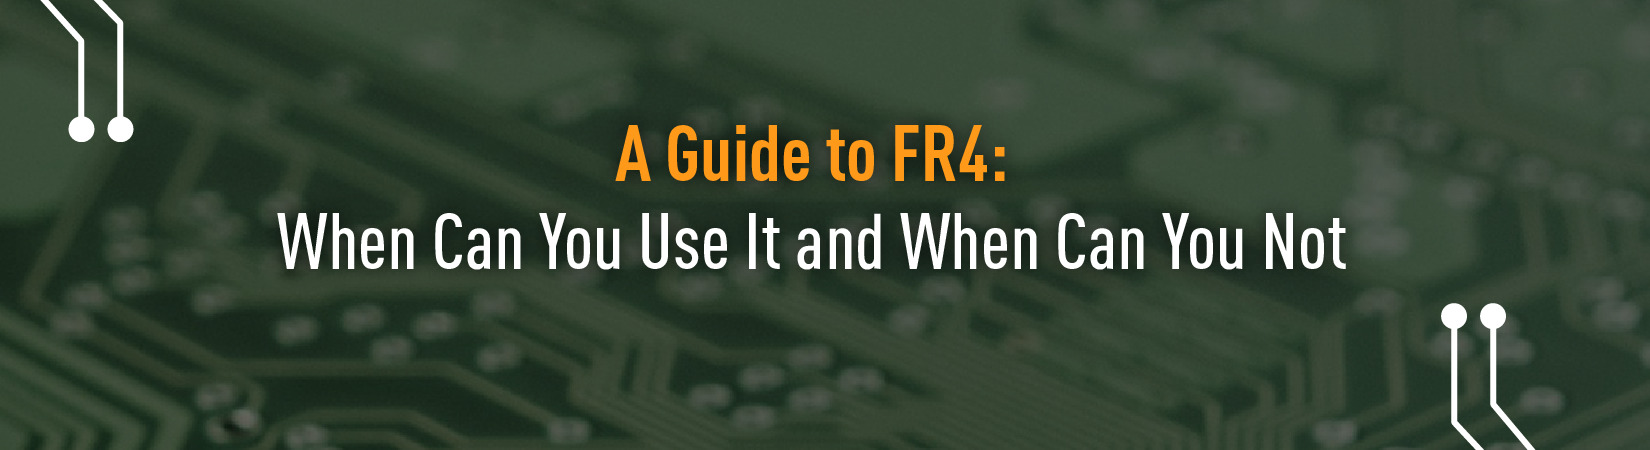 A Guide to FR4: When You Can Use It and When You Can Not